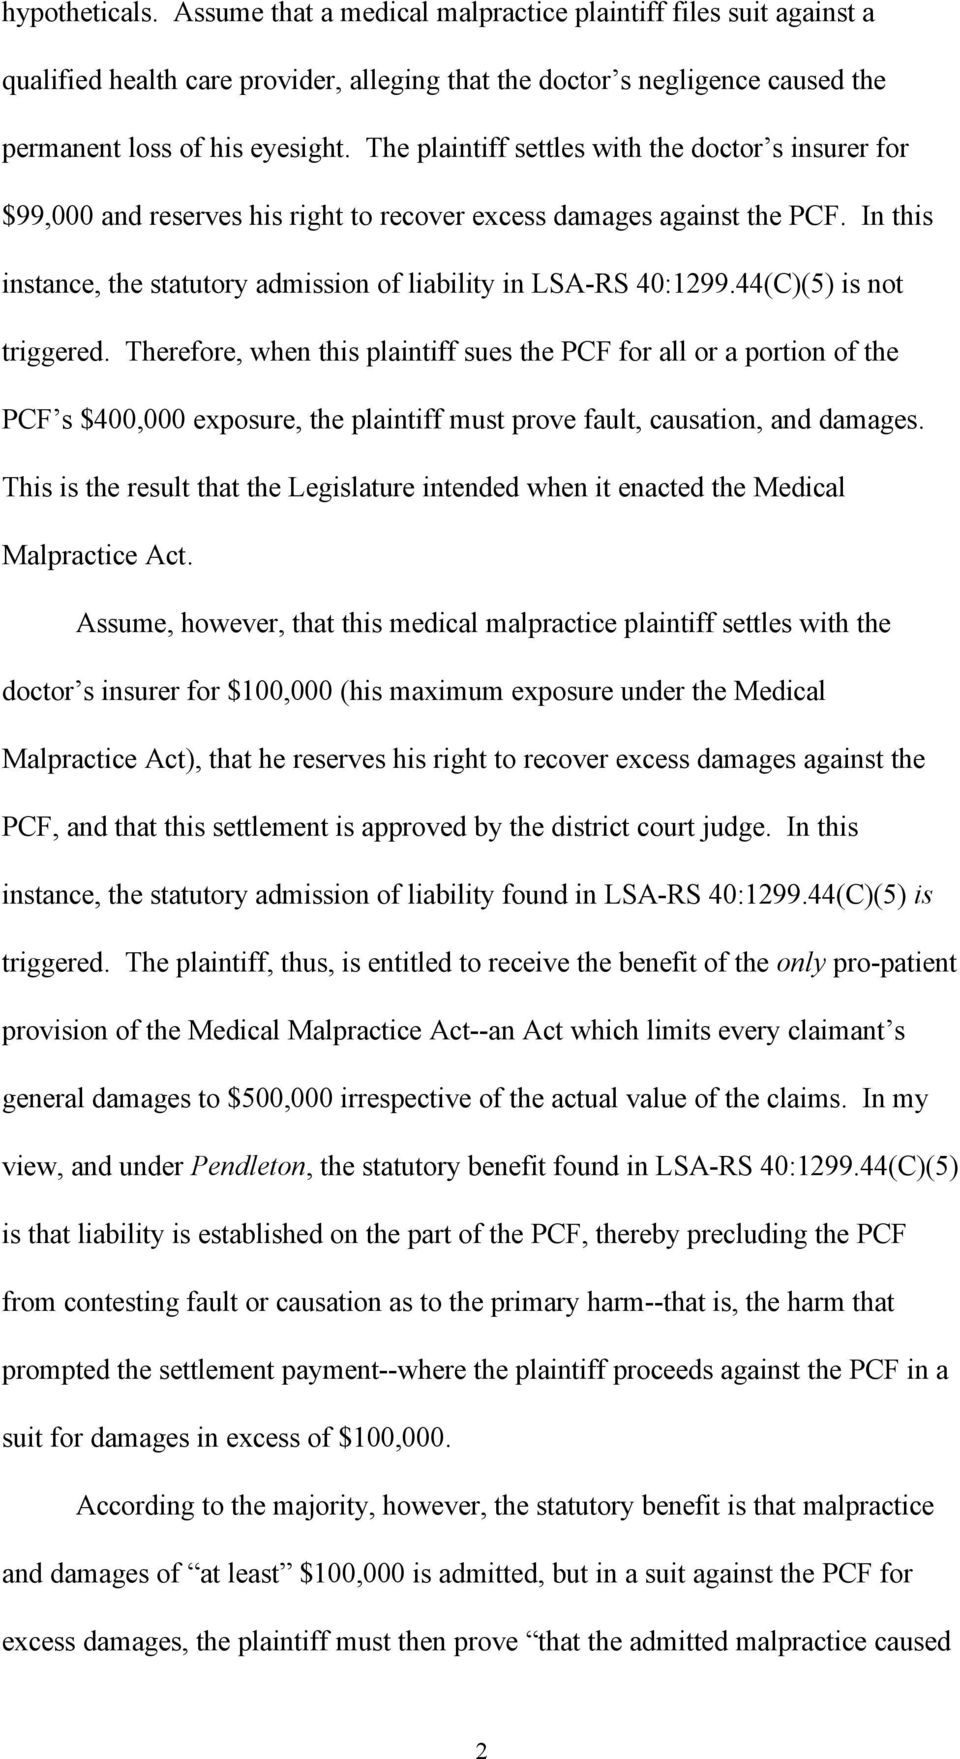 44(C)(5) is not triggered. Therefore, when this plaintiff sues the PCF for all or a portion of the PCF s $400,000 exposure, the plaintiff must prove fault, causation, and damages.